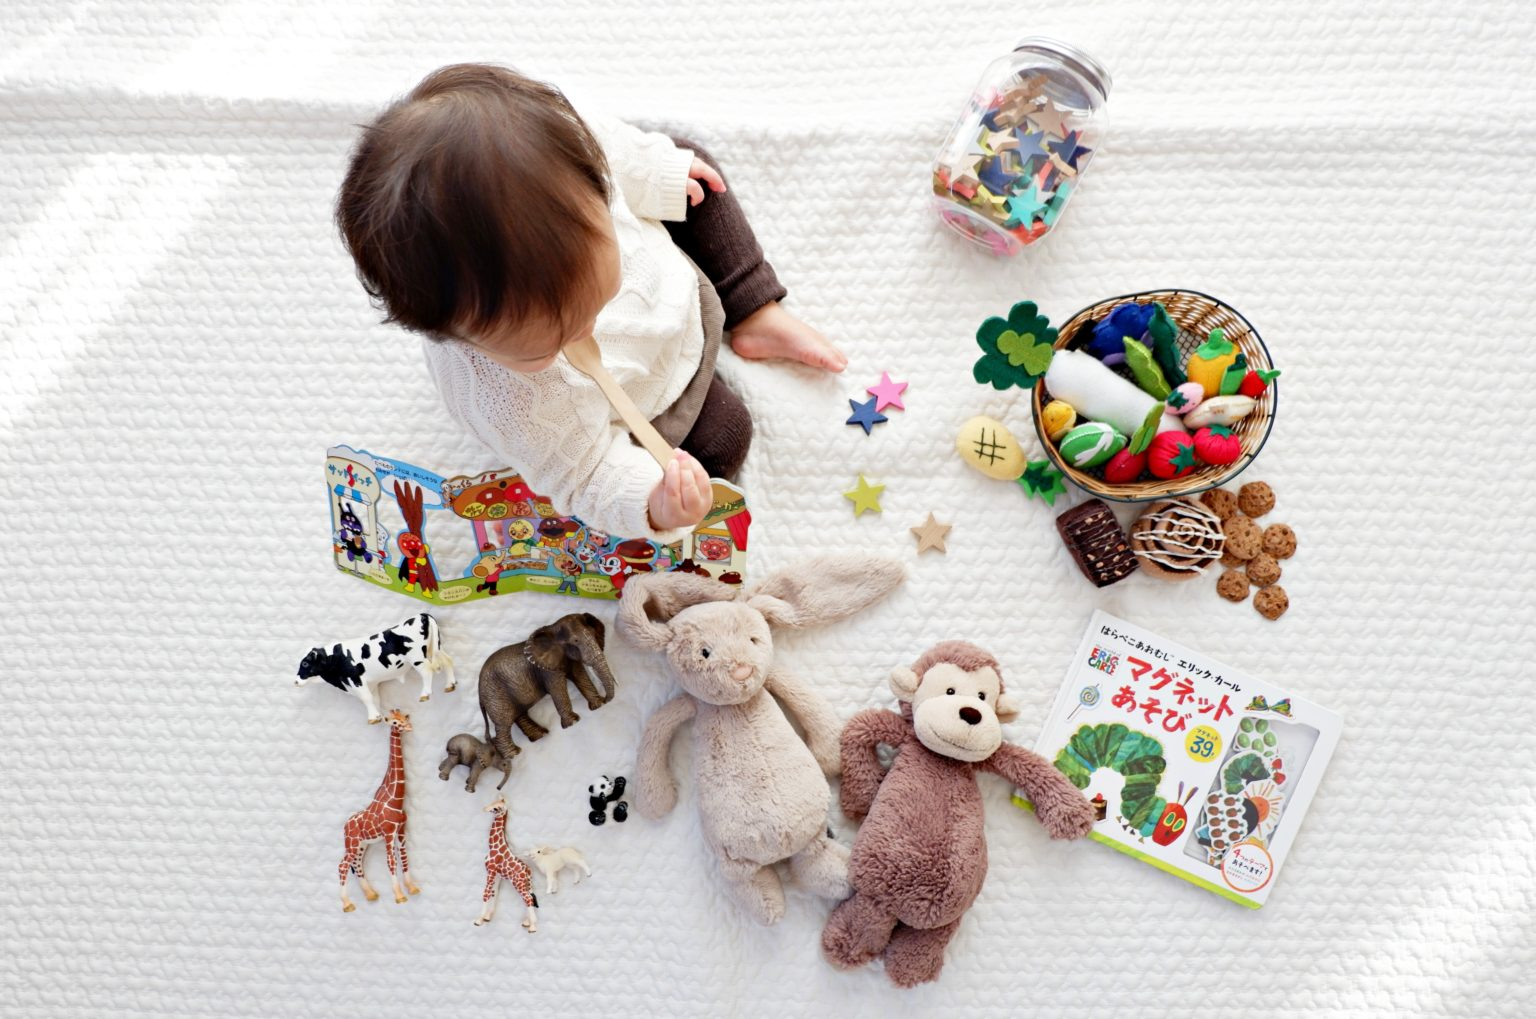 Small child playing with toys on a white mat